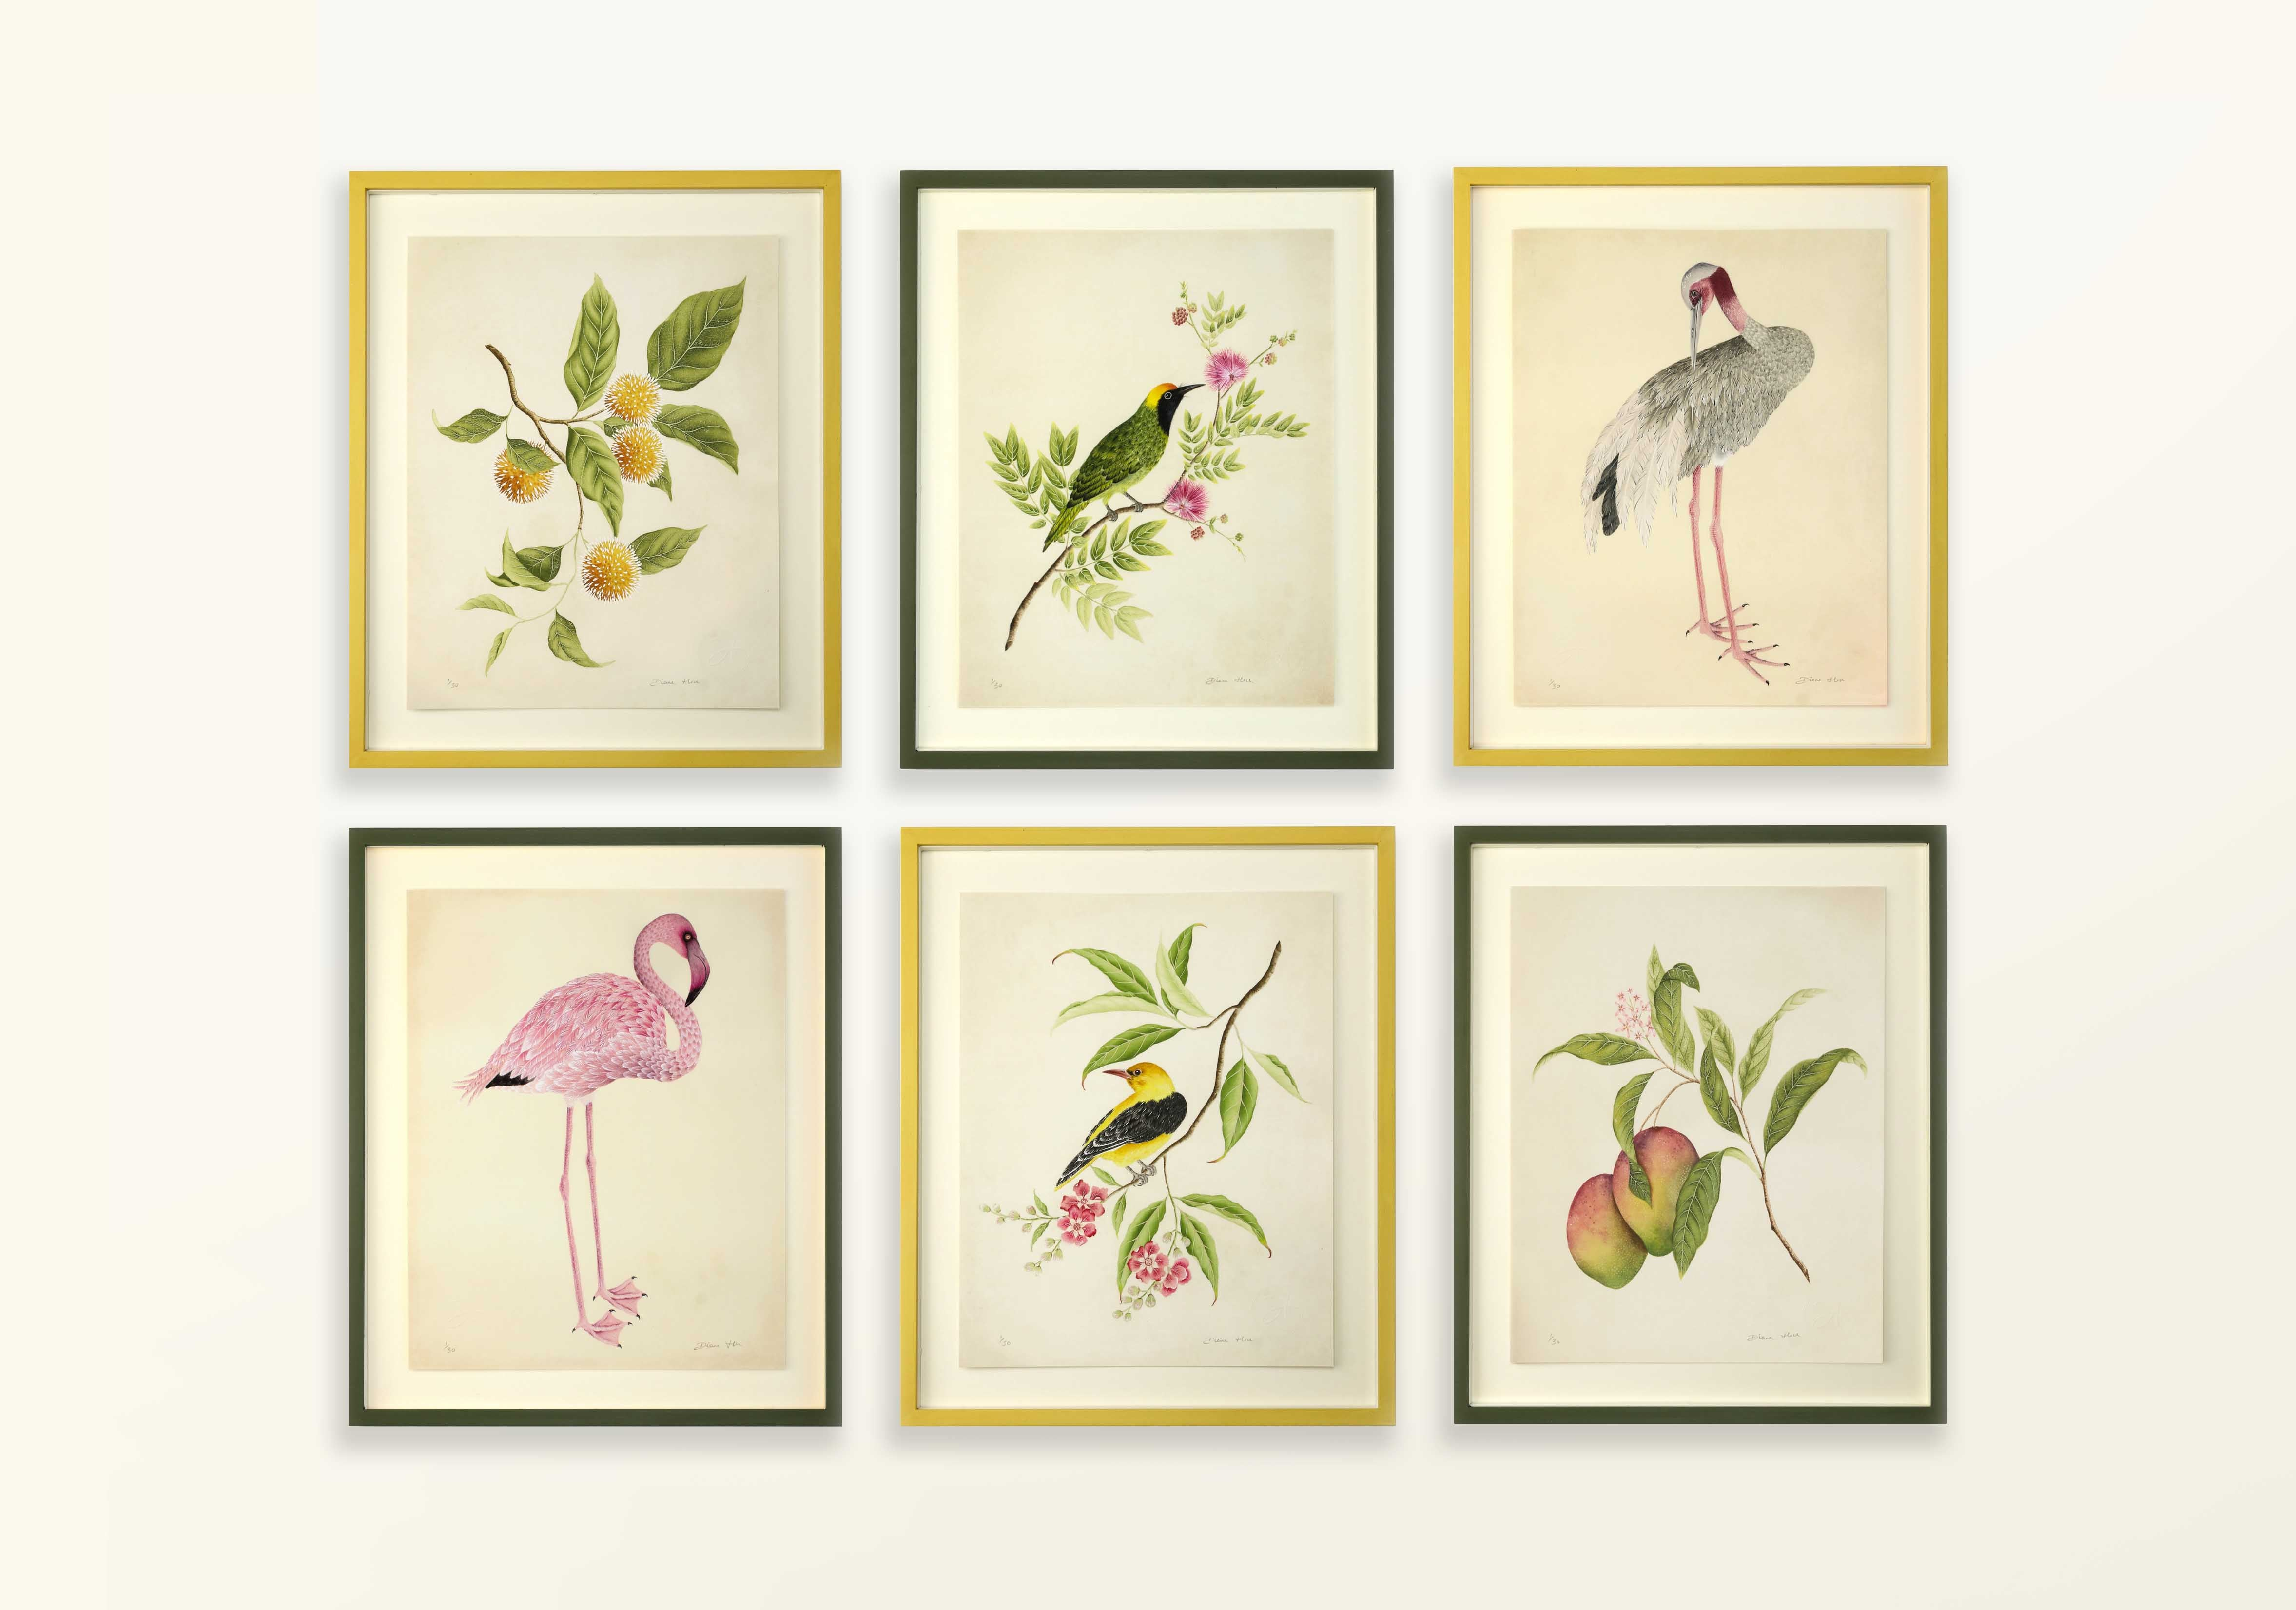 Botanical collection by Diane Hill - collection of 6 prints side by side